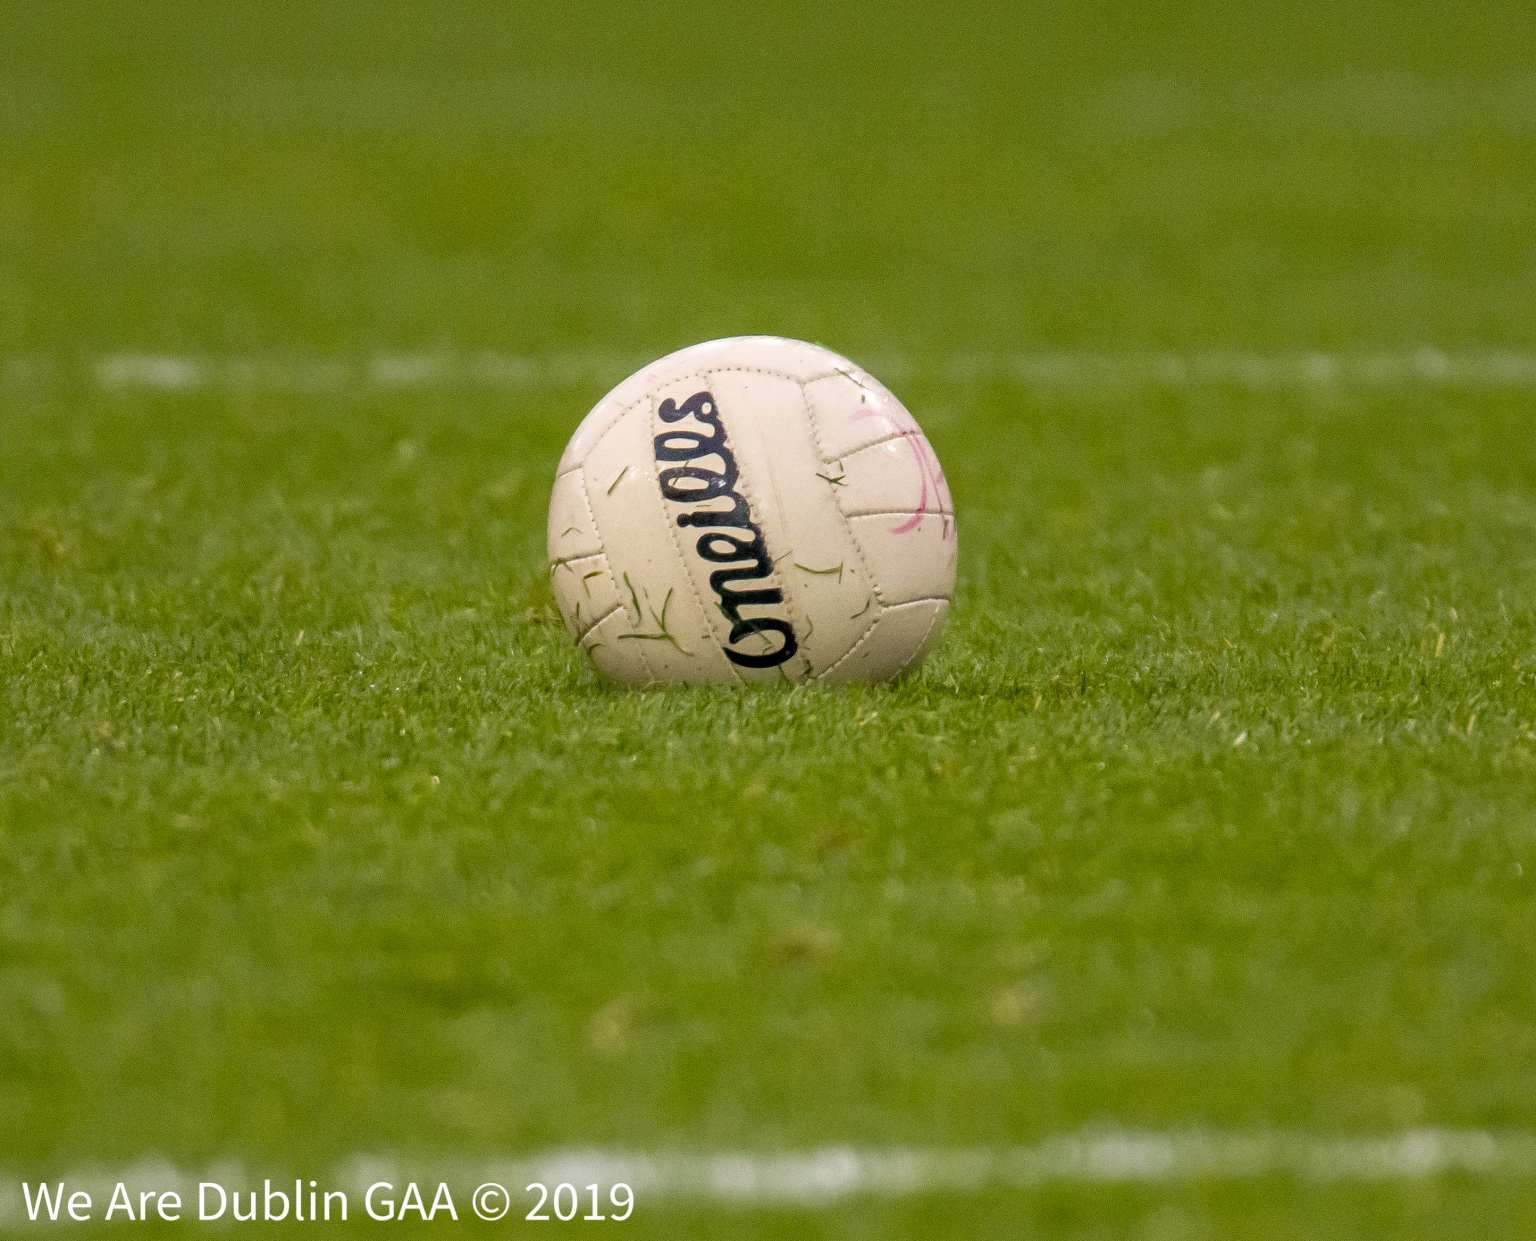 A Gaelic football on a grass pitch to signify the clubs chosen for the LGFA Club2Gether Programme